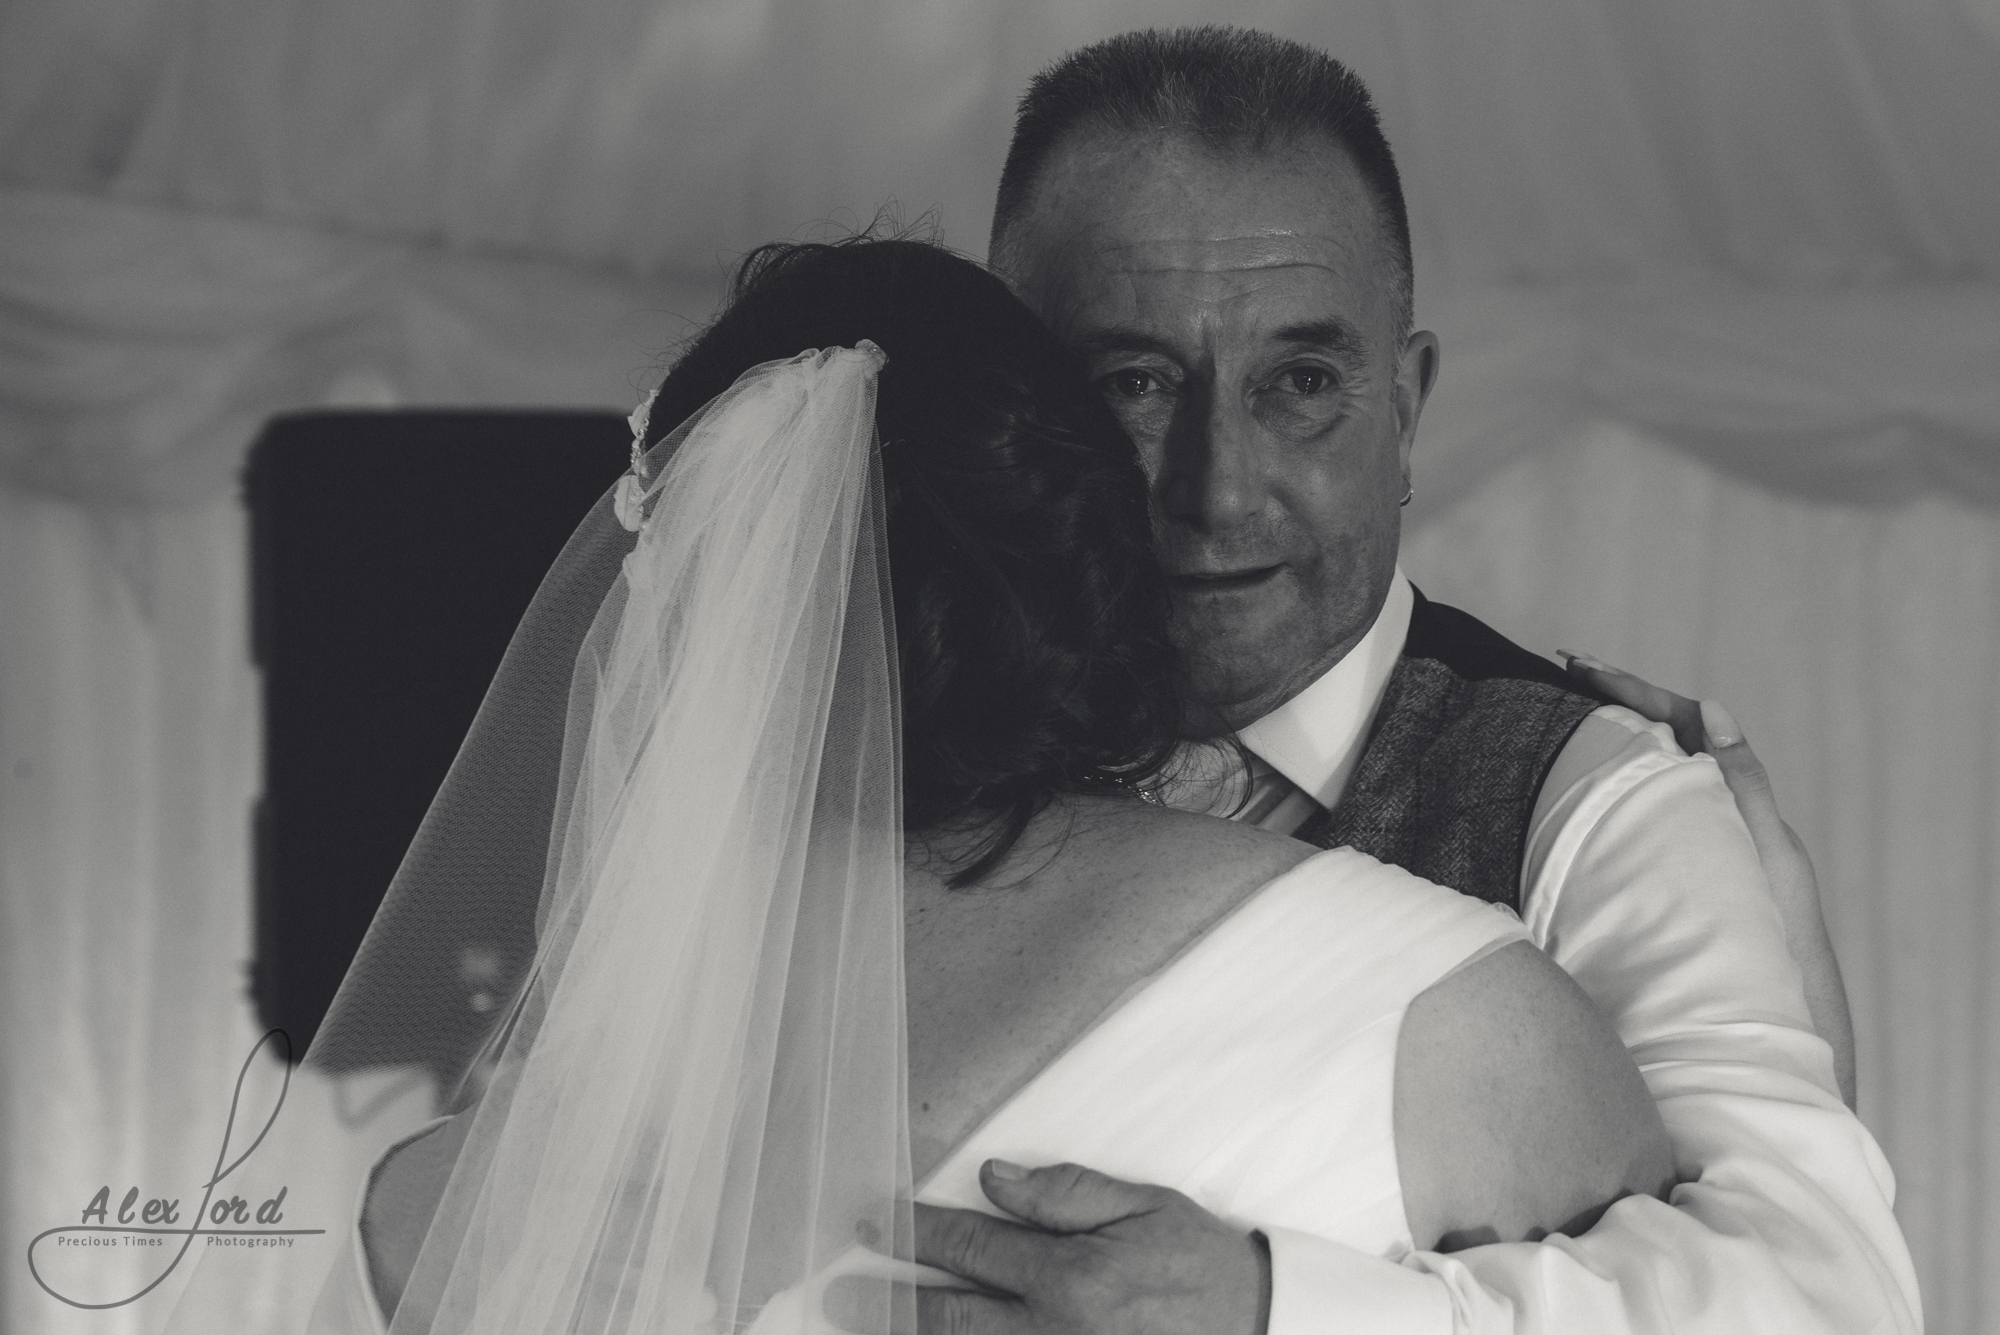 The bride shares a dance with her emotional dad.